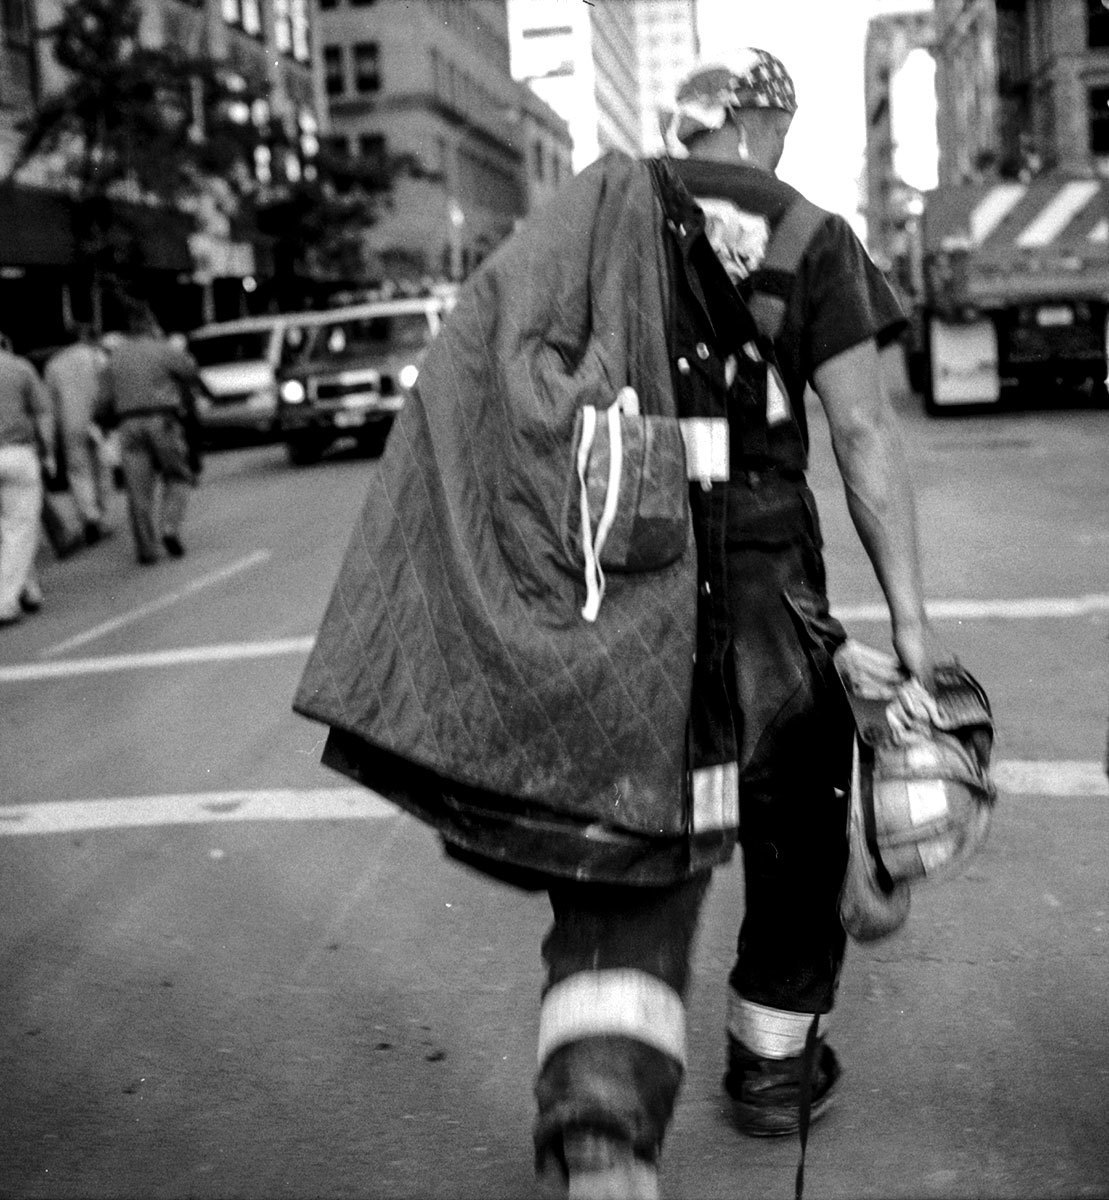 Ground Hero. Portraits of rescue workers on the days after the attacks of September 11, New York, NY, 2001.